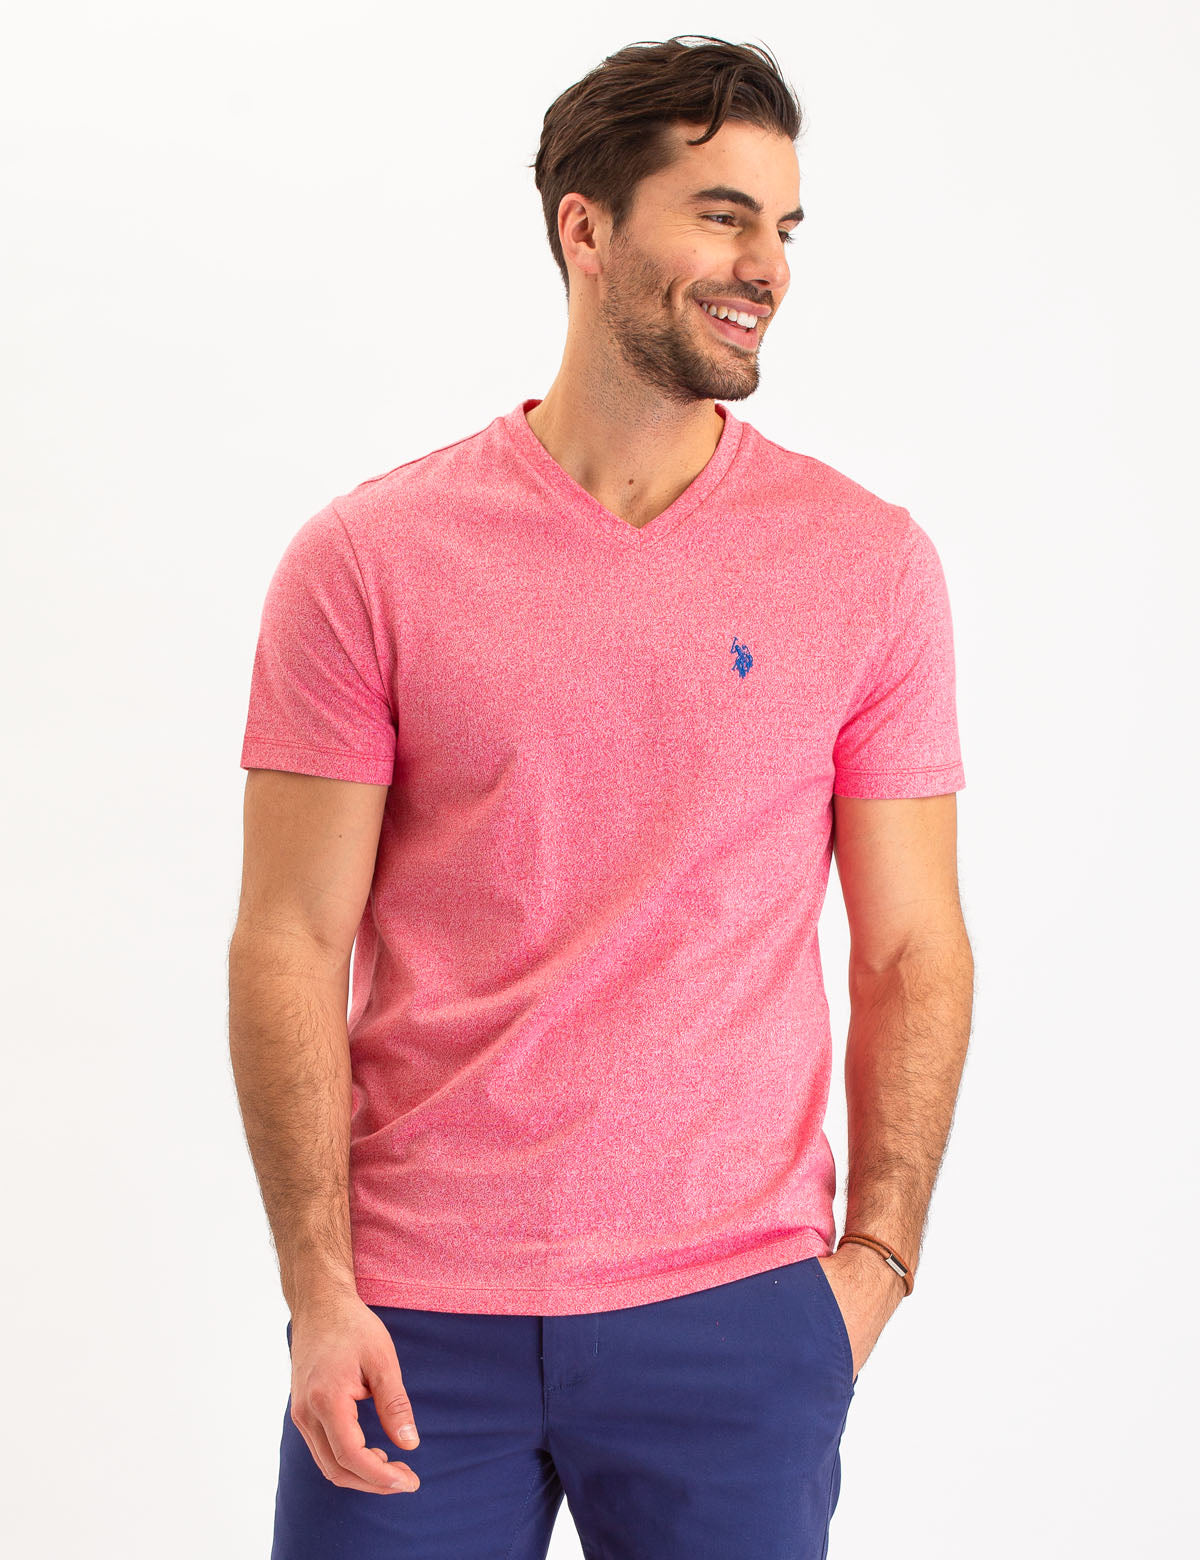 TWISTED YARN V-NECK T-SHIRT - U.S. Polo Assn.